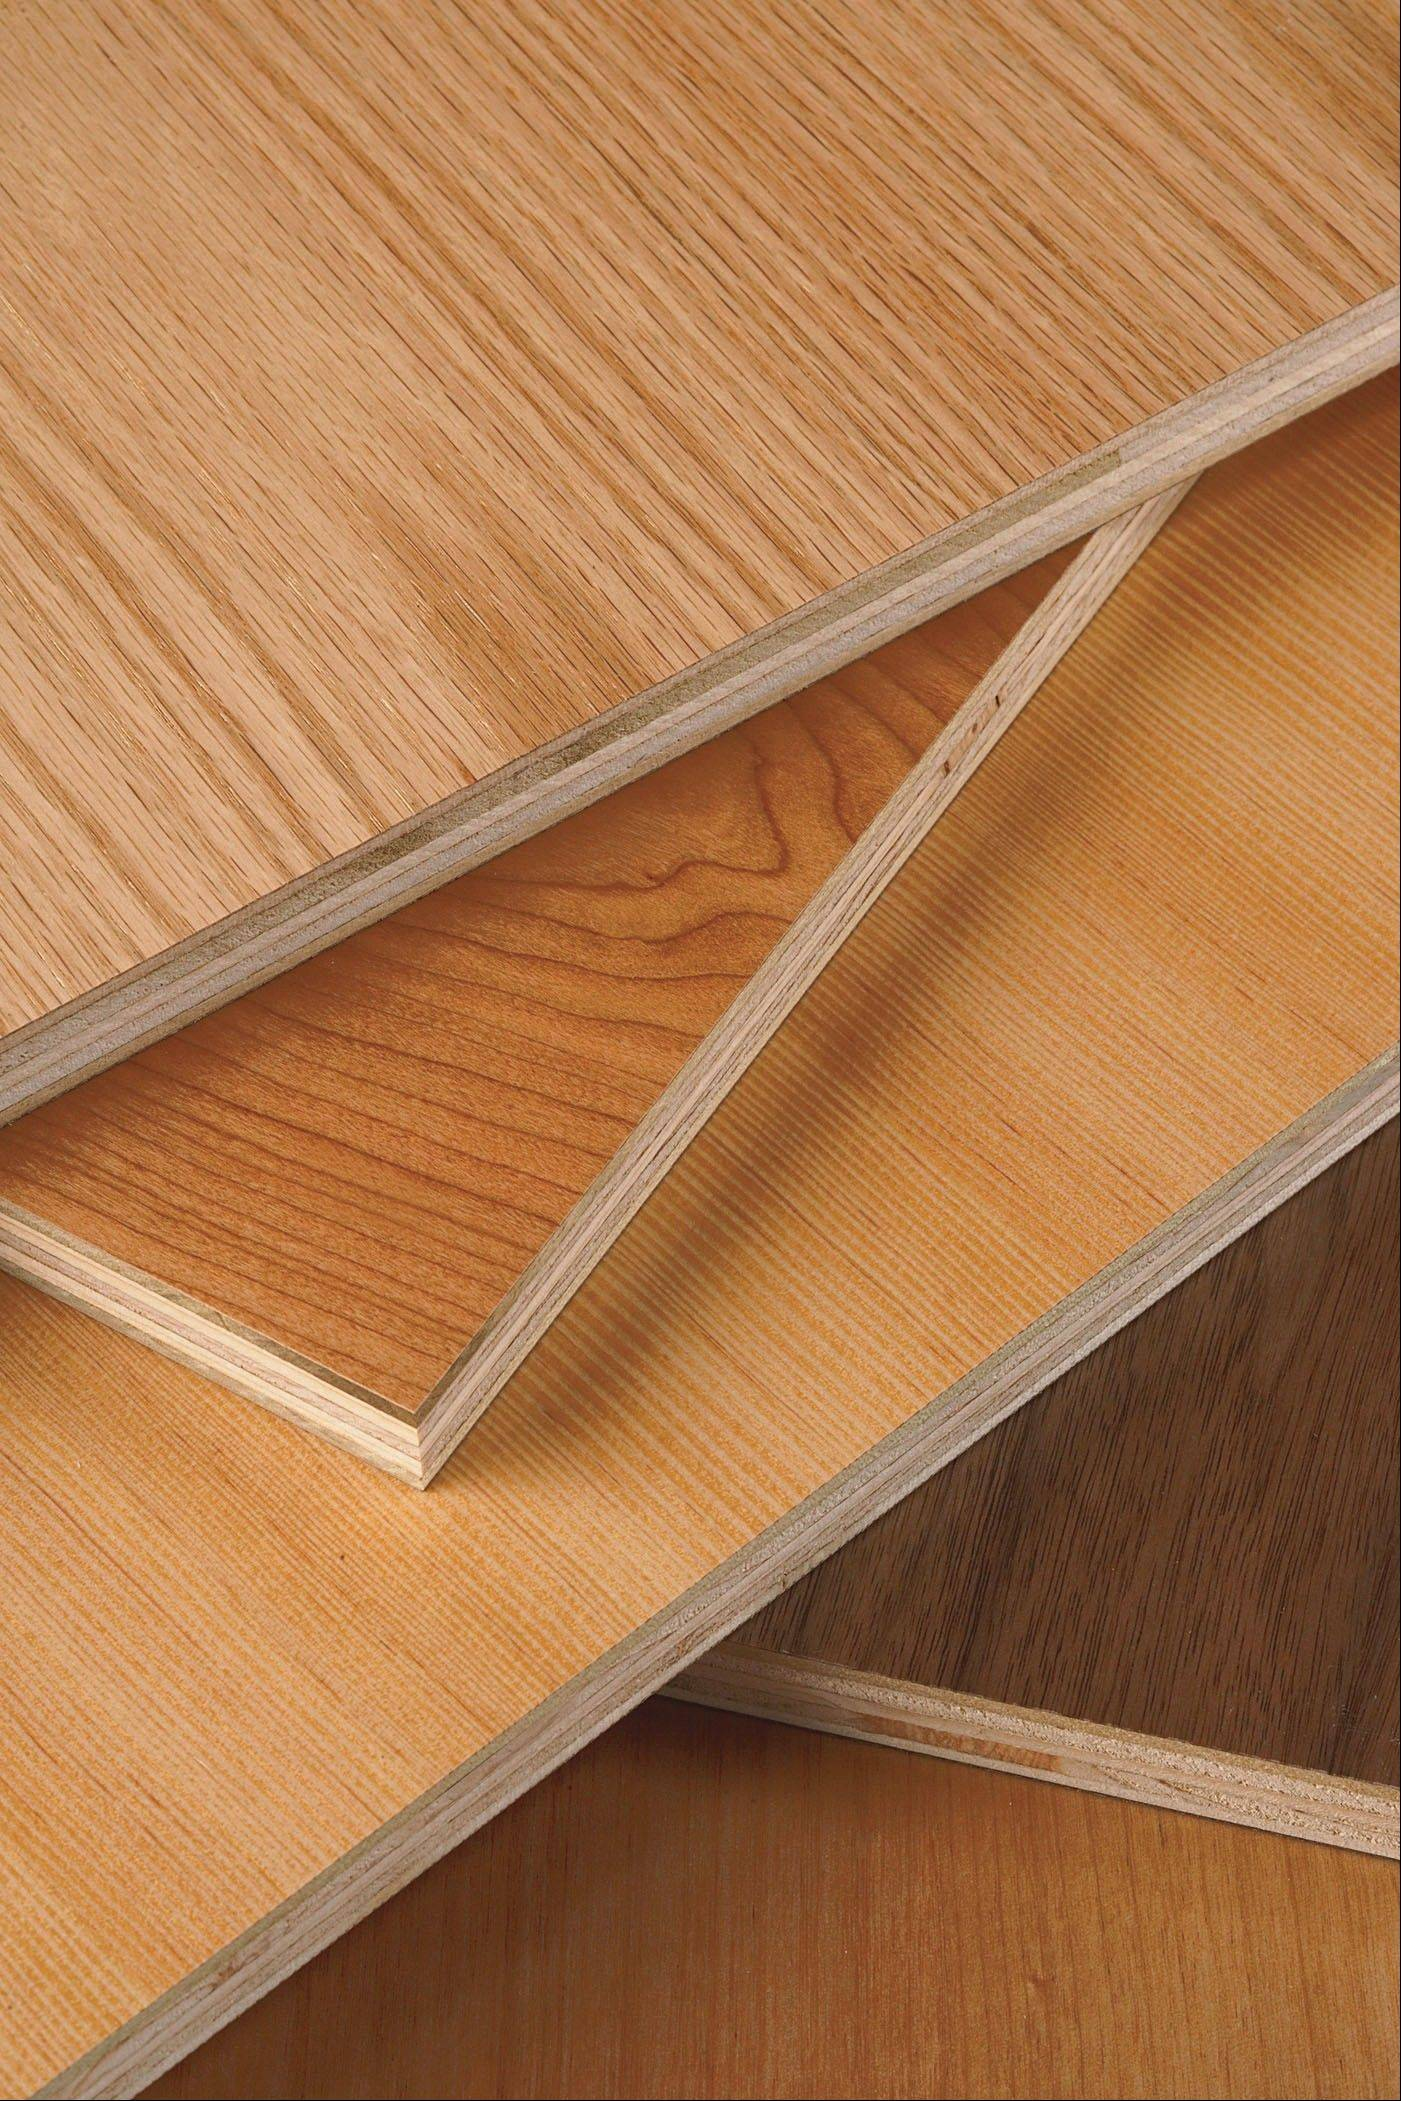 Formaldehyde-free plywood is better for the environment, experts say.